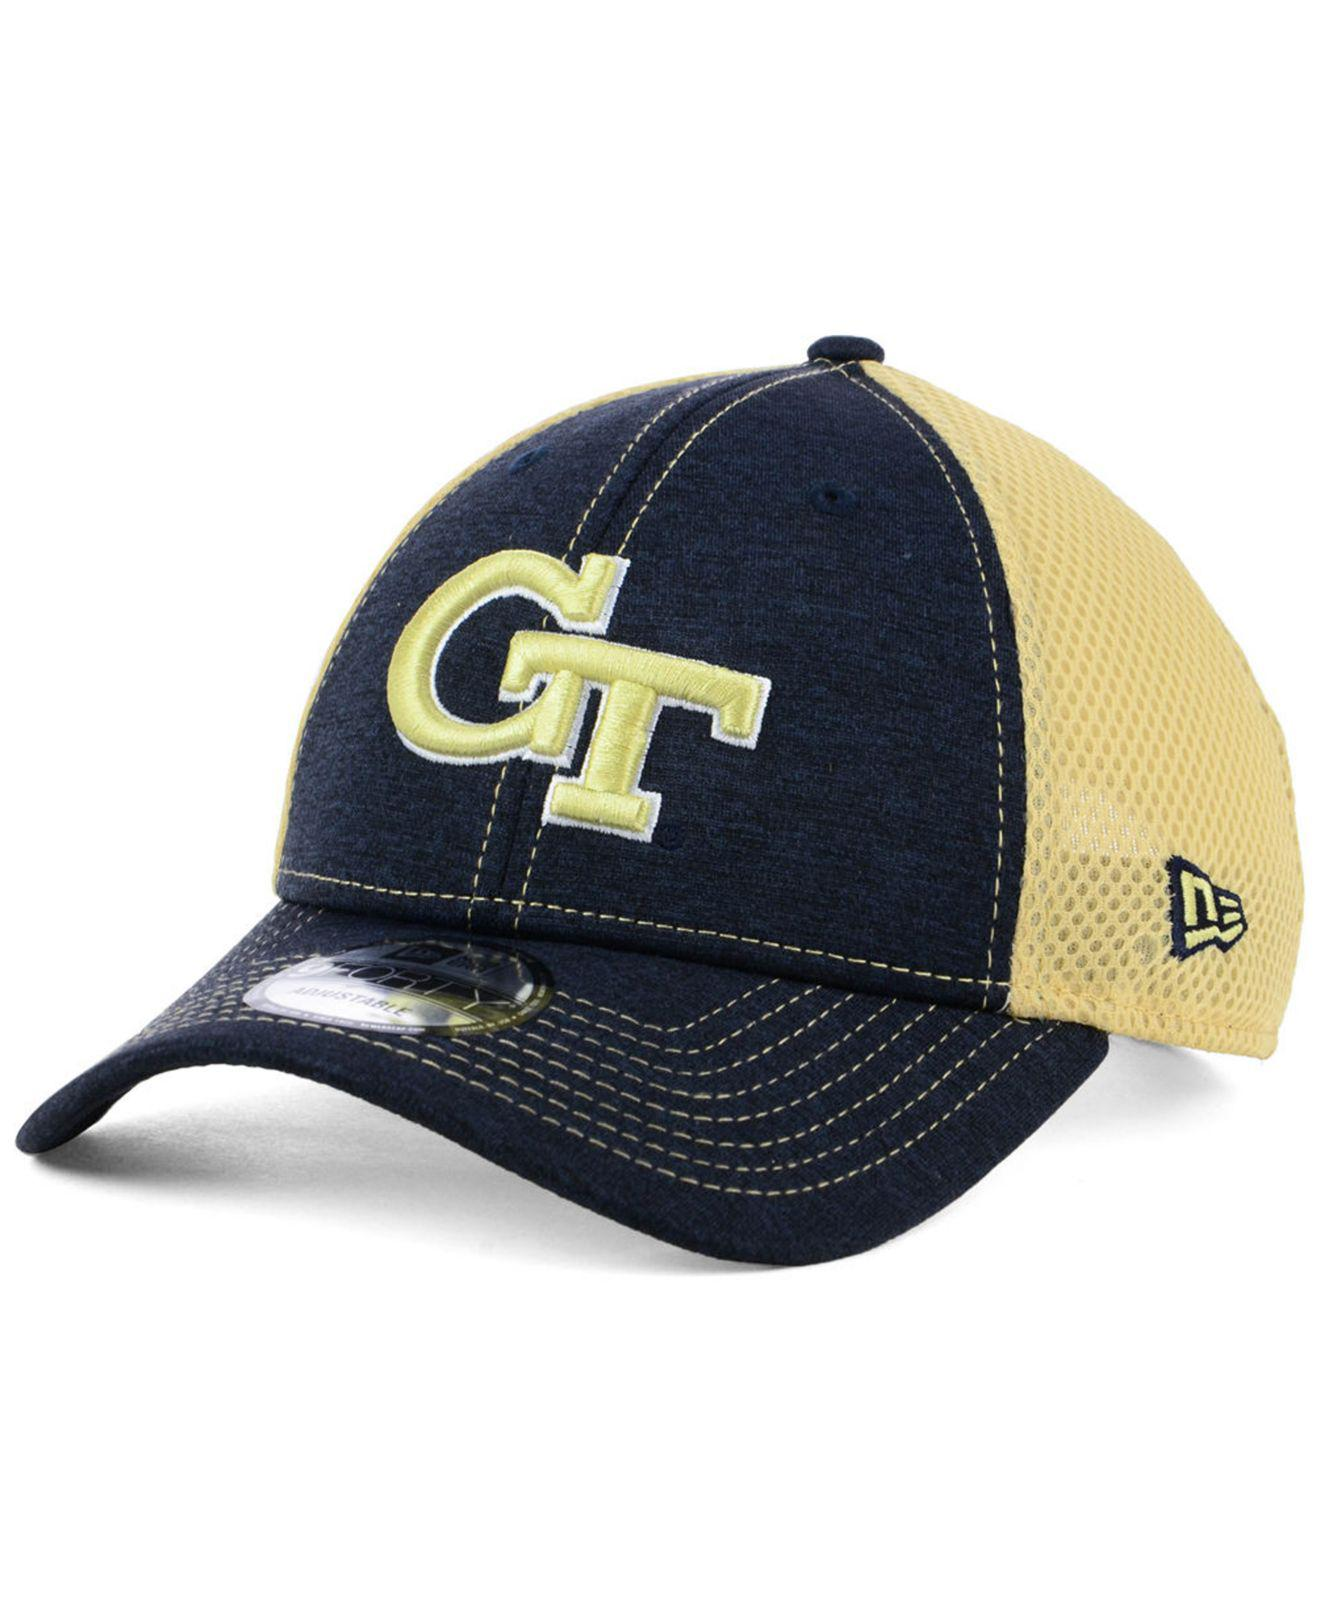 promo code 1a9e7 48150 KTZ. Men s Blue Georgia-tech Shadow Turn 9forty Cap